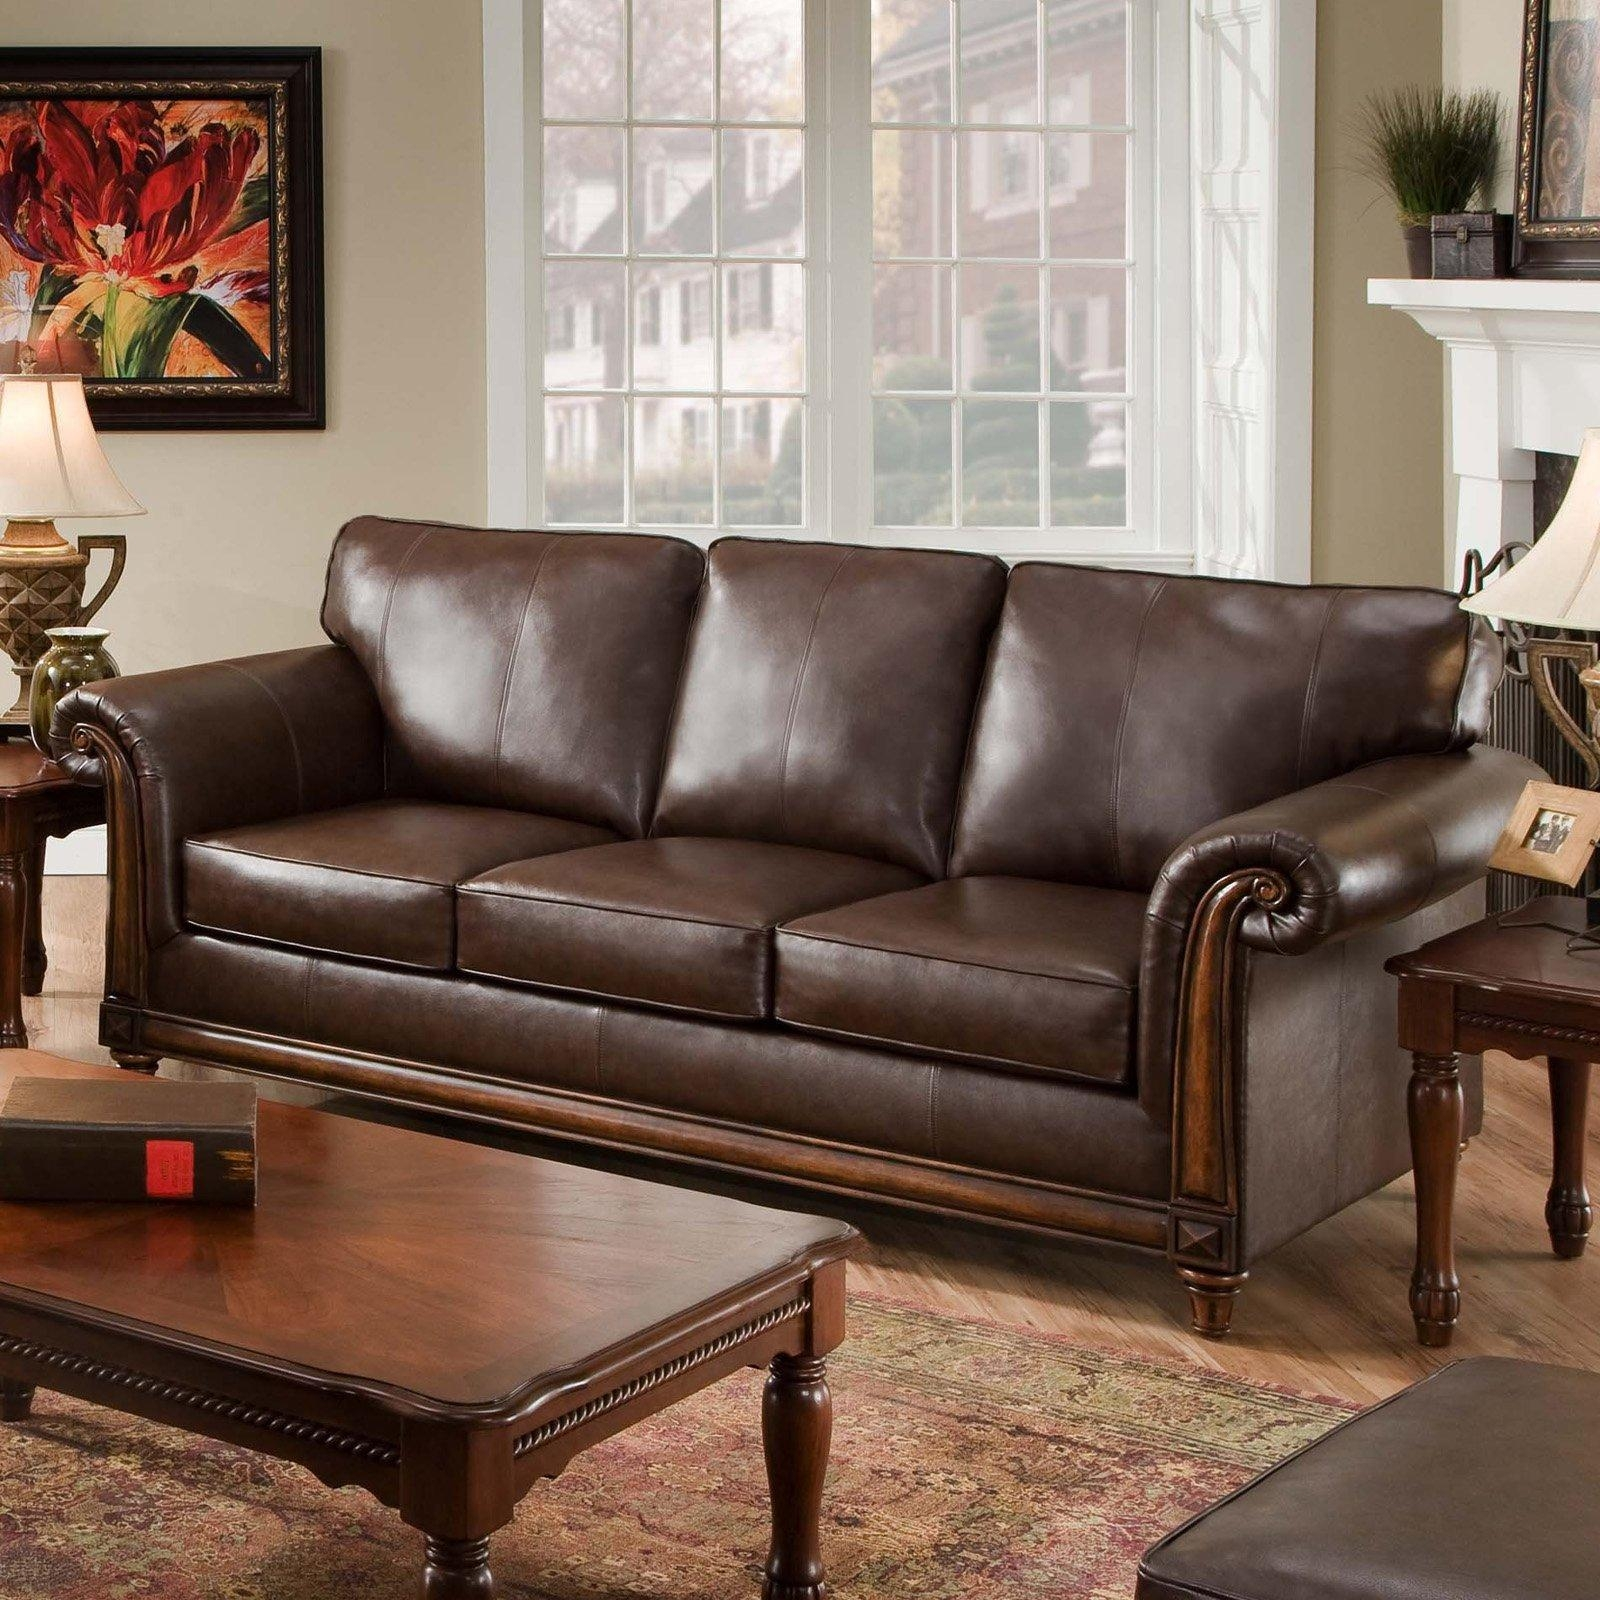 Simmons San Diego Coffee Leather Sofa | Hayneedle With Simmons Sofas (View 12 of 20)